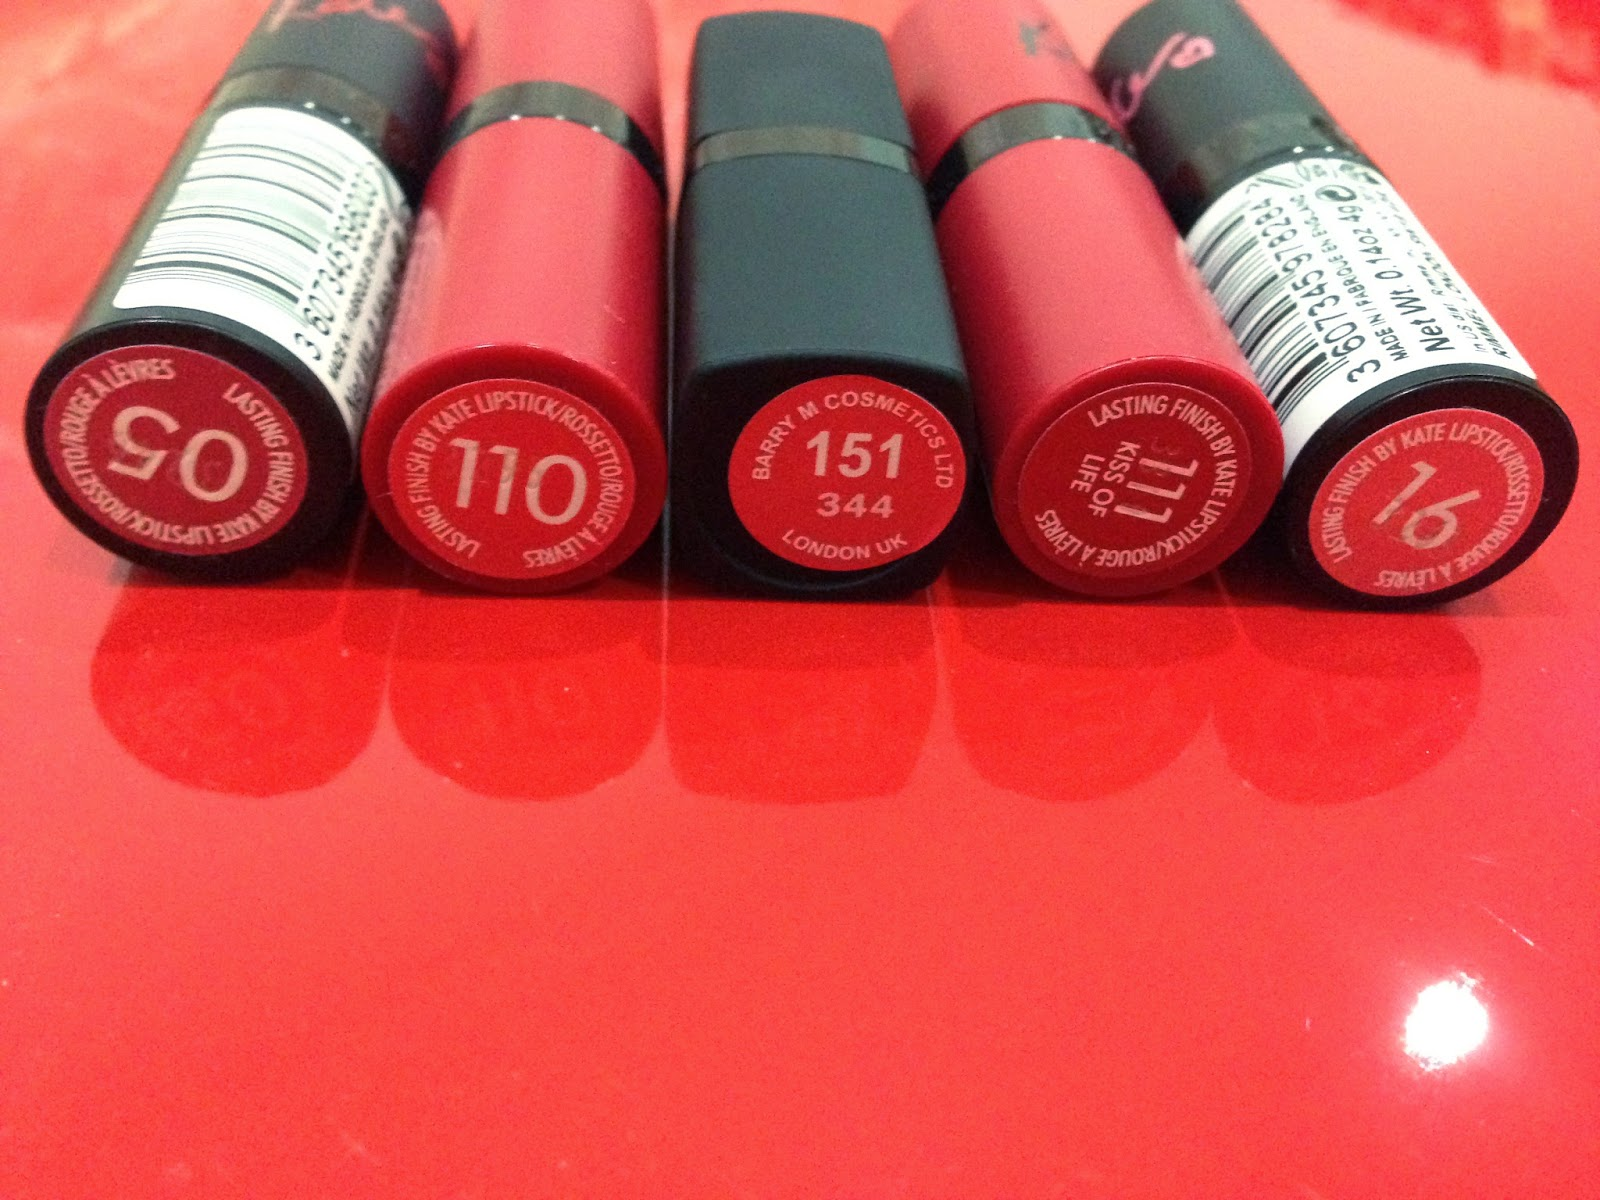 Rimmel Kate Lipsticks and Barry M Lip Paint Shades